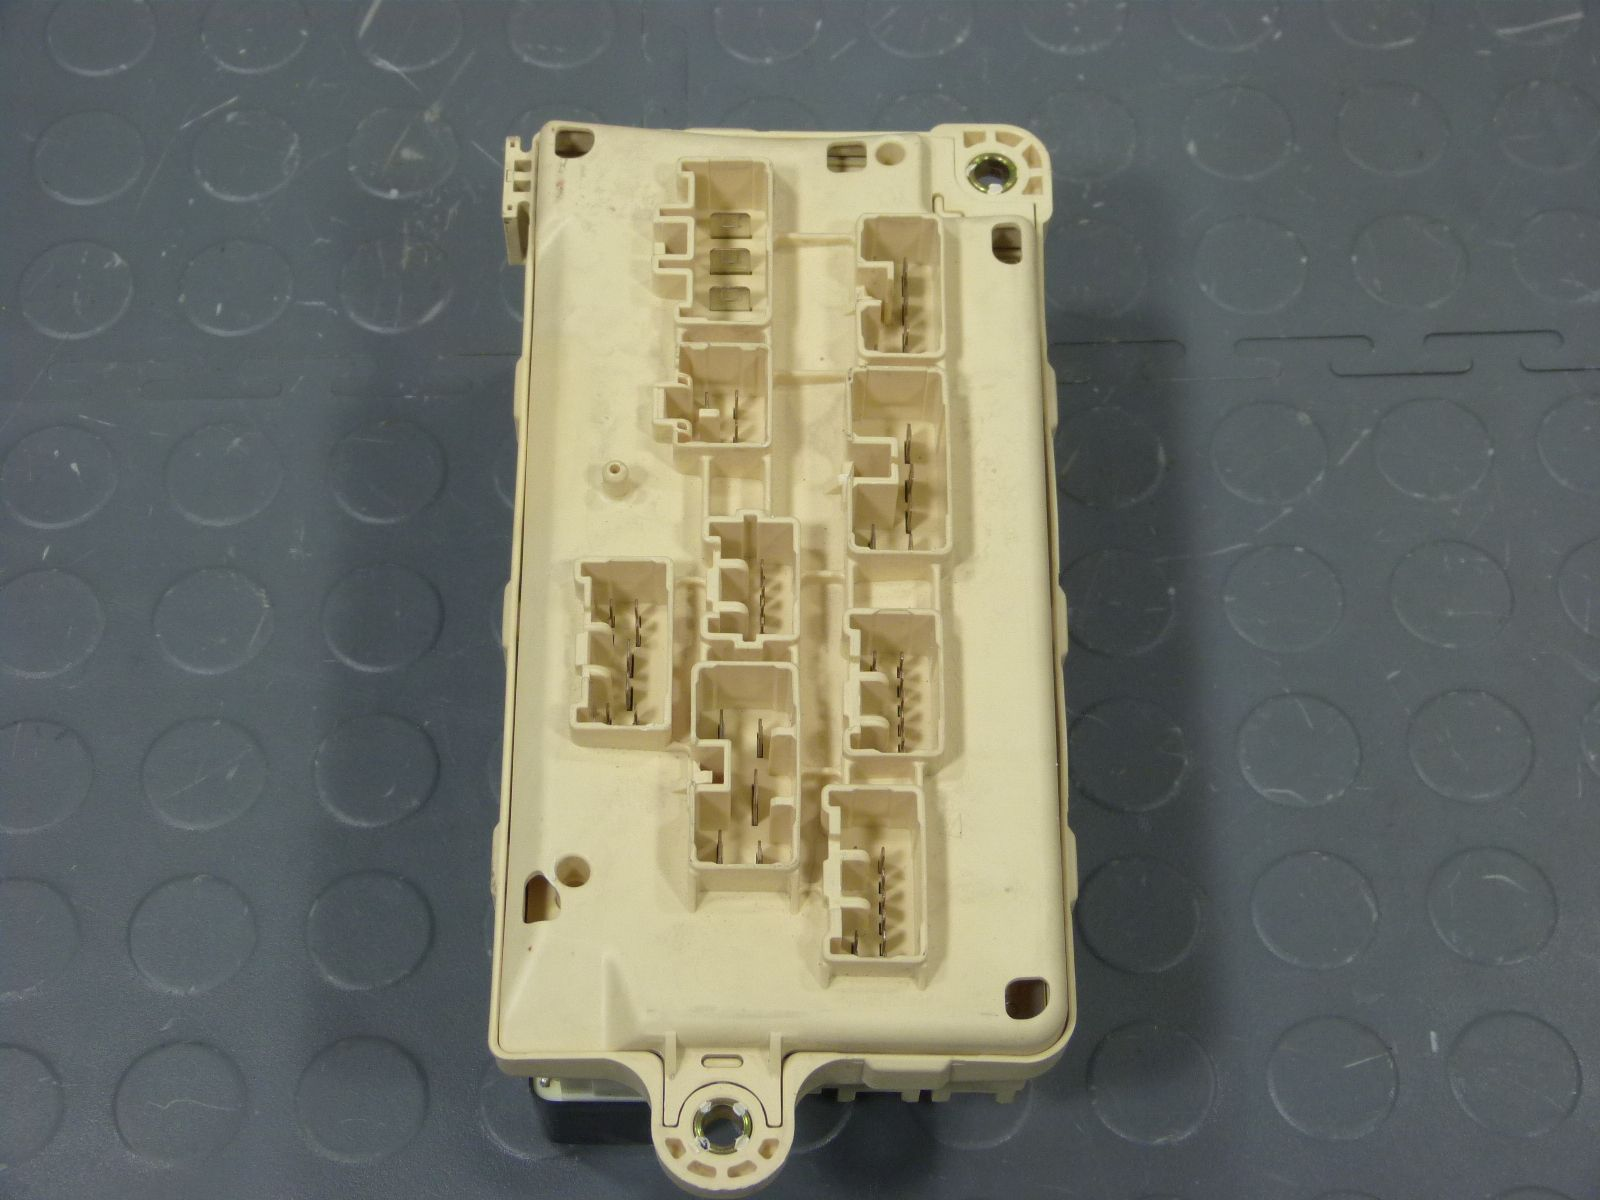 Fuse Box For Lexus Ls400 Wiring Diagrams 2003 Gs300 95 Underhood Assembly Relays Fuses Diagram 1994